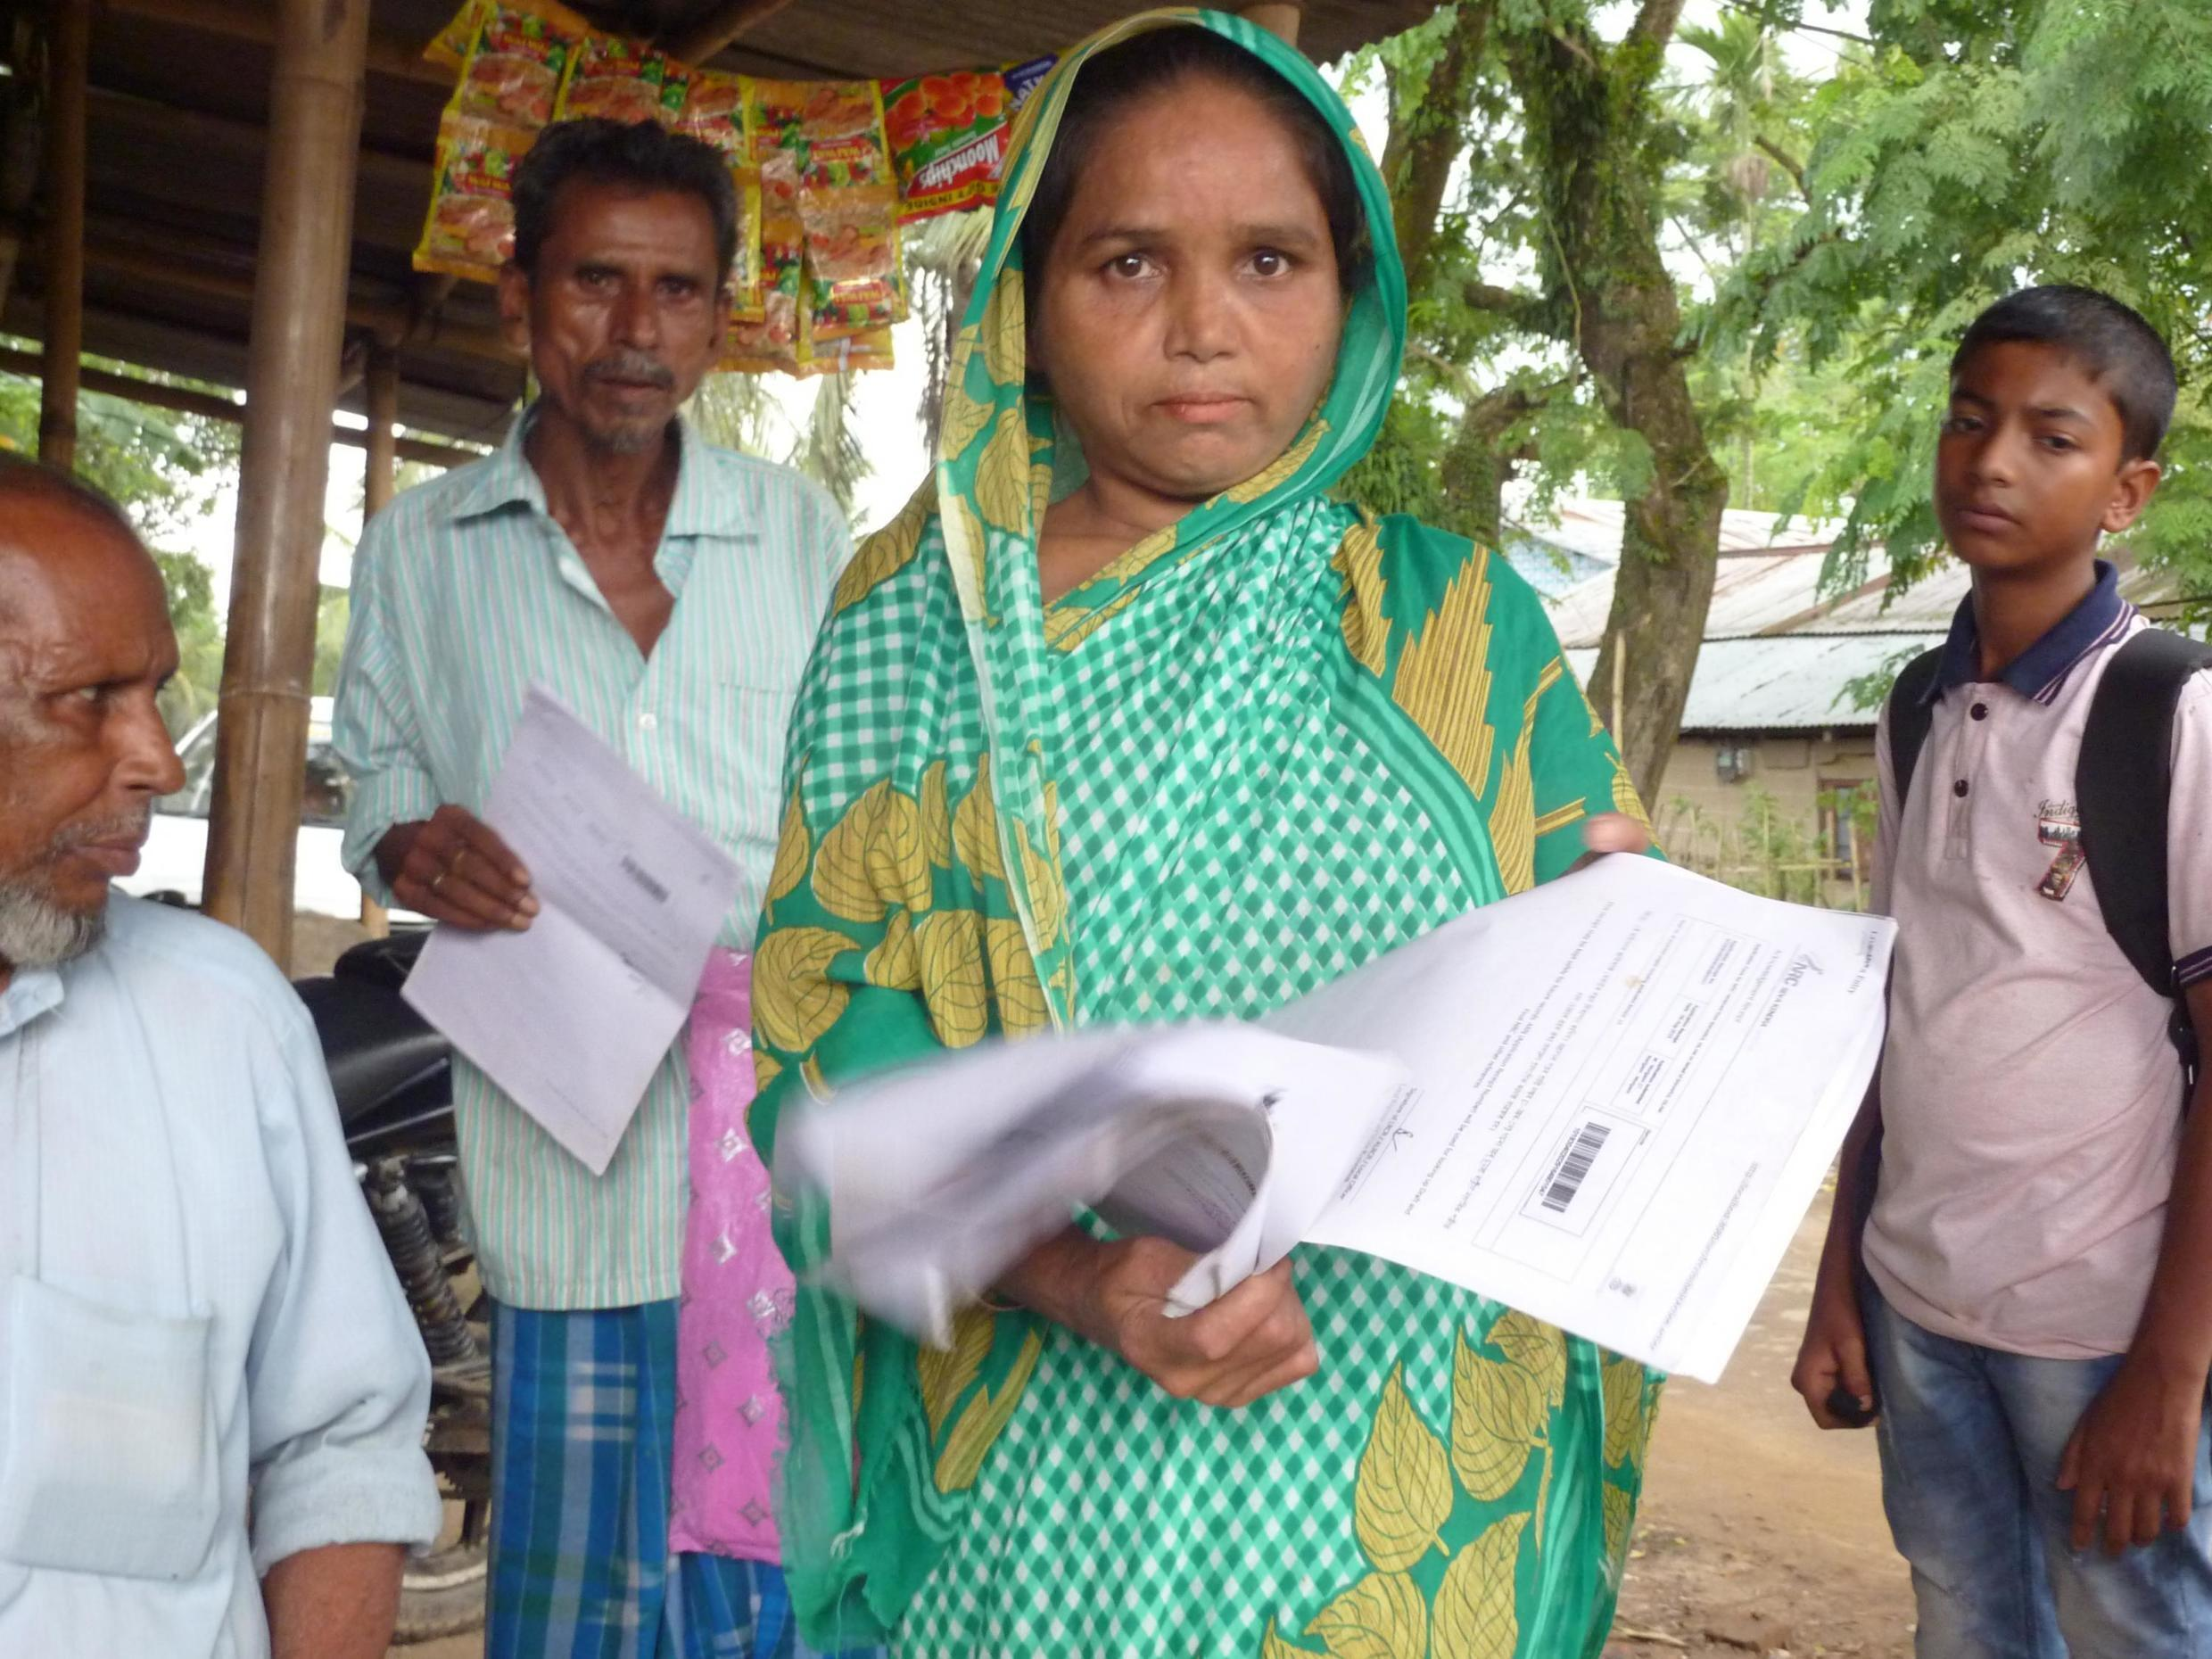 Villagers from Maloibari in Assam who have been left out of the national citizens' register.